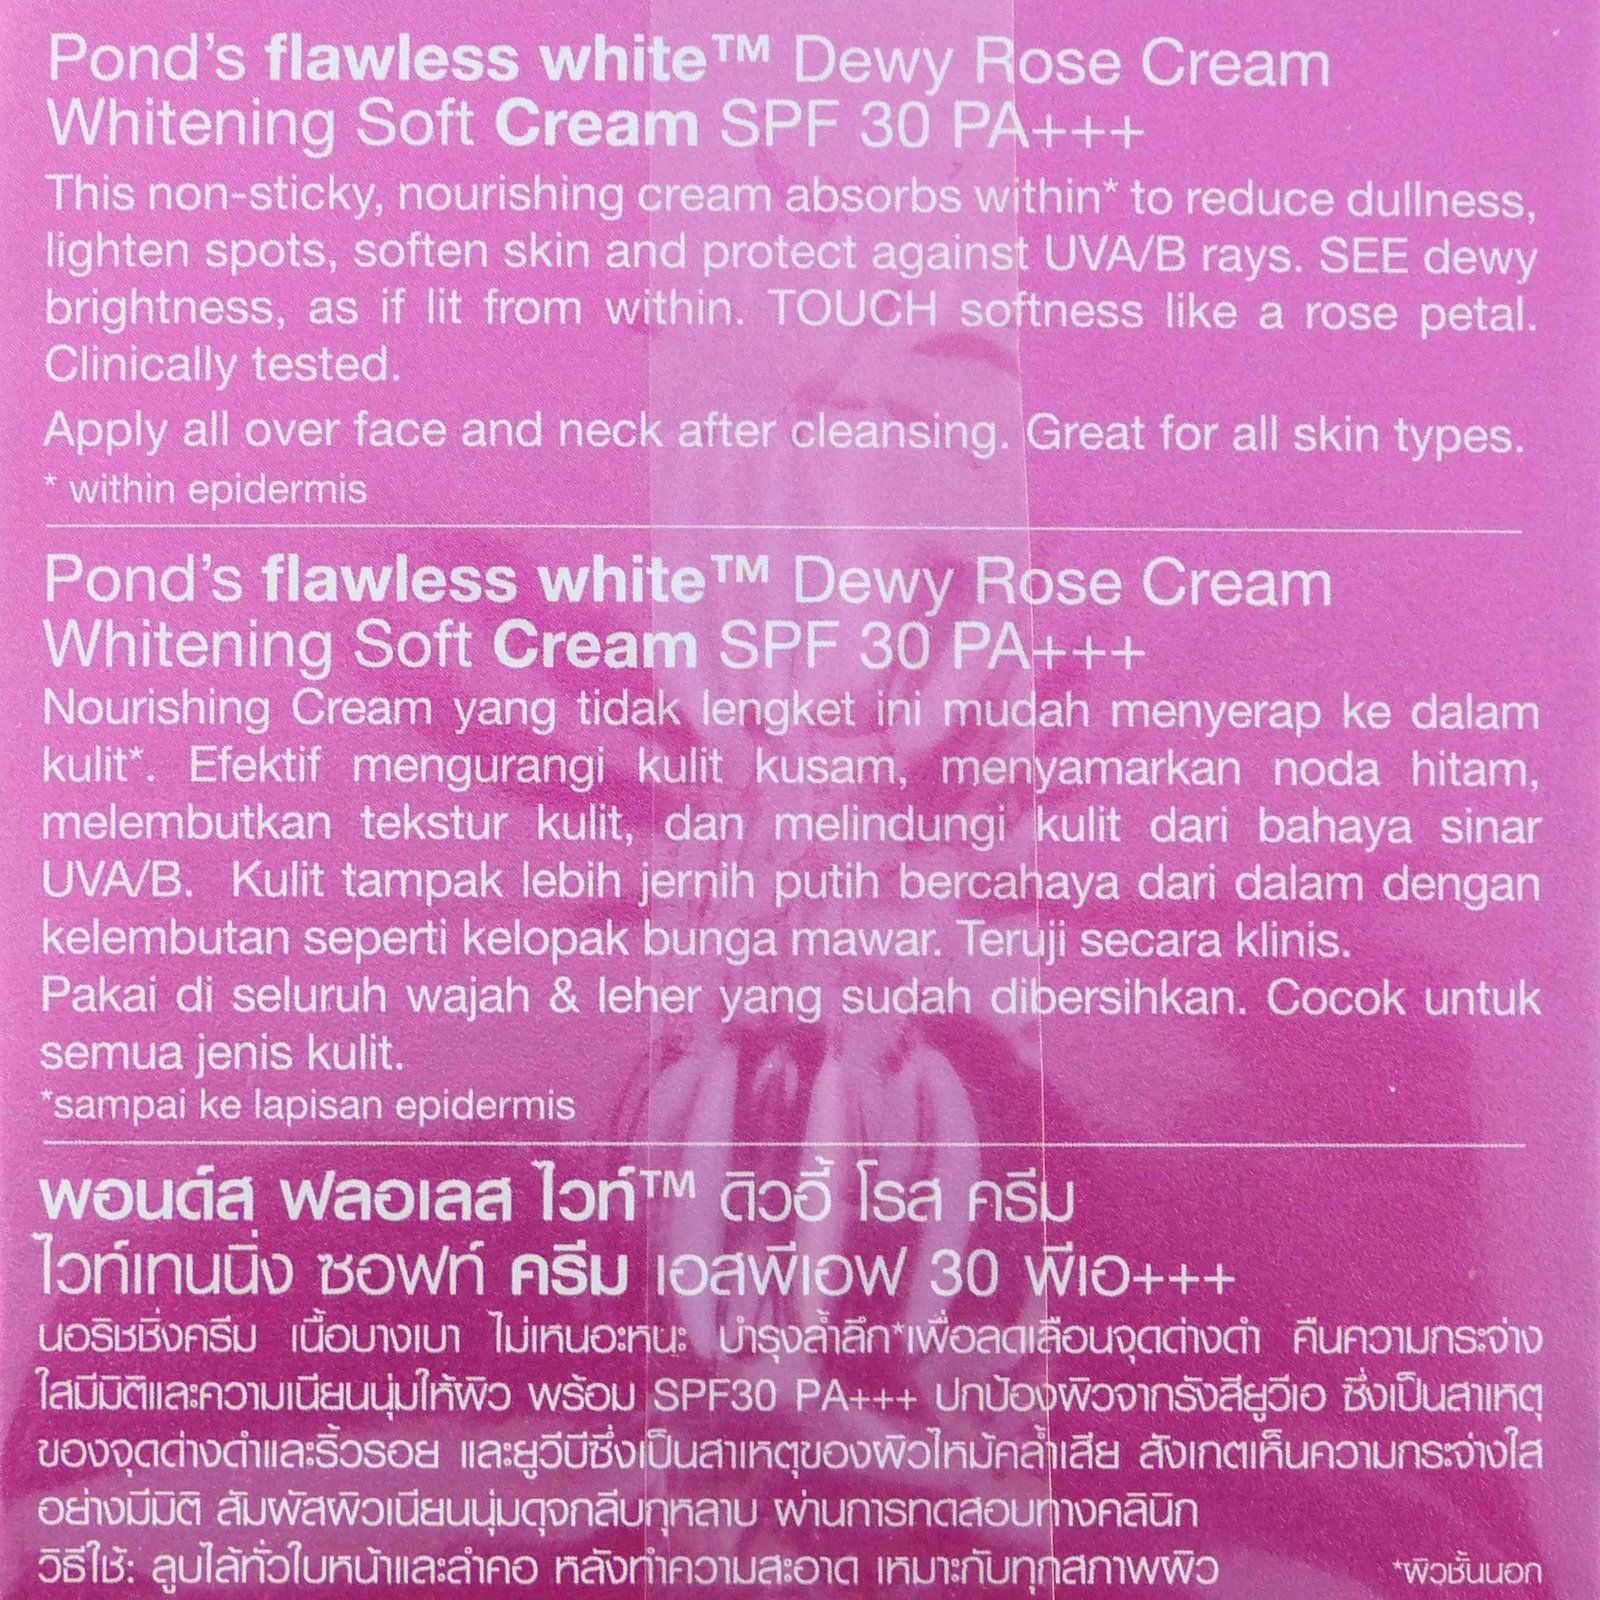 Ponds Flawless White Dewy Rose Cream Spf 30 50g Daftar Harga Gel 50 G Skin Whitening 18oz For Sale